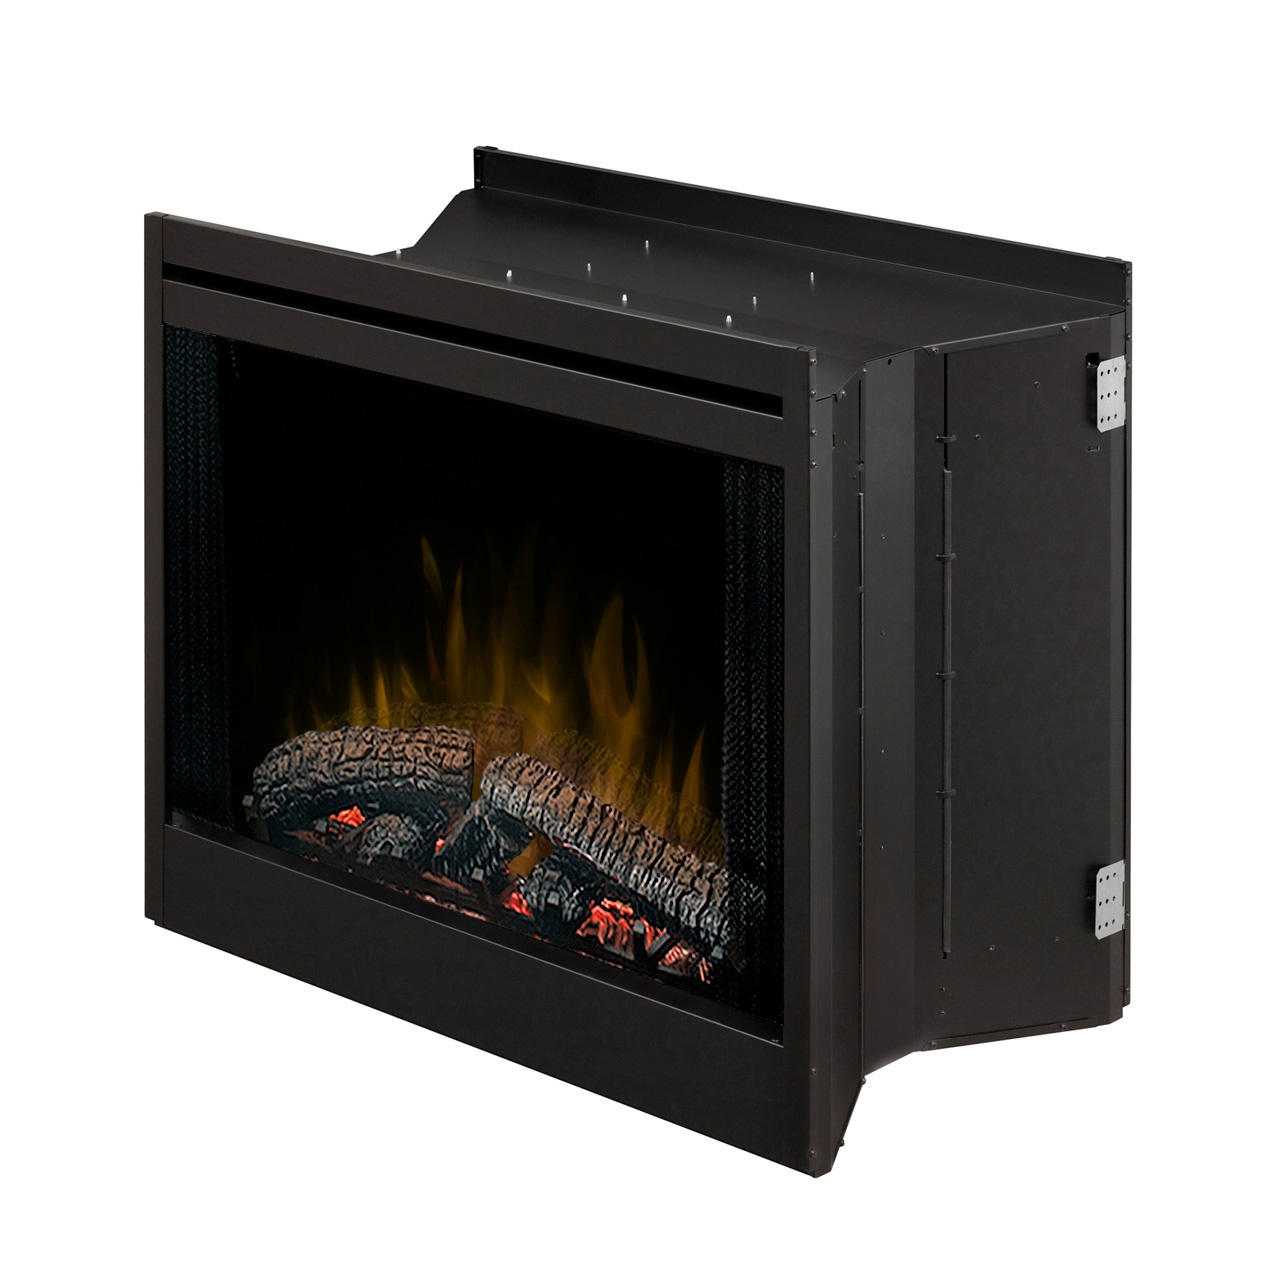 ... Electric Fireplace Insert. Sale! Dimplex BF392SD - Dimplex 39″ BF392SD 2-Sided Electric Fireplace Insert - ADDCO